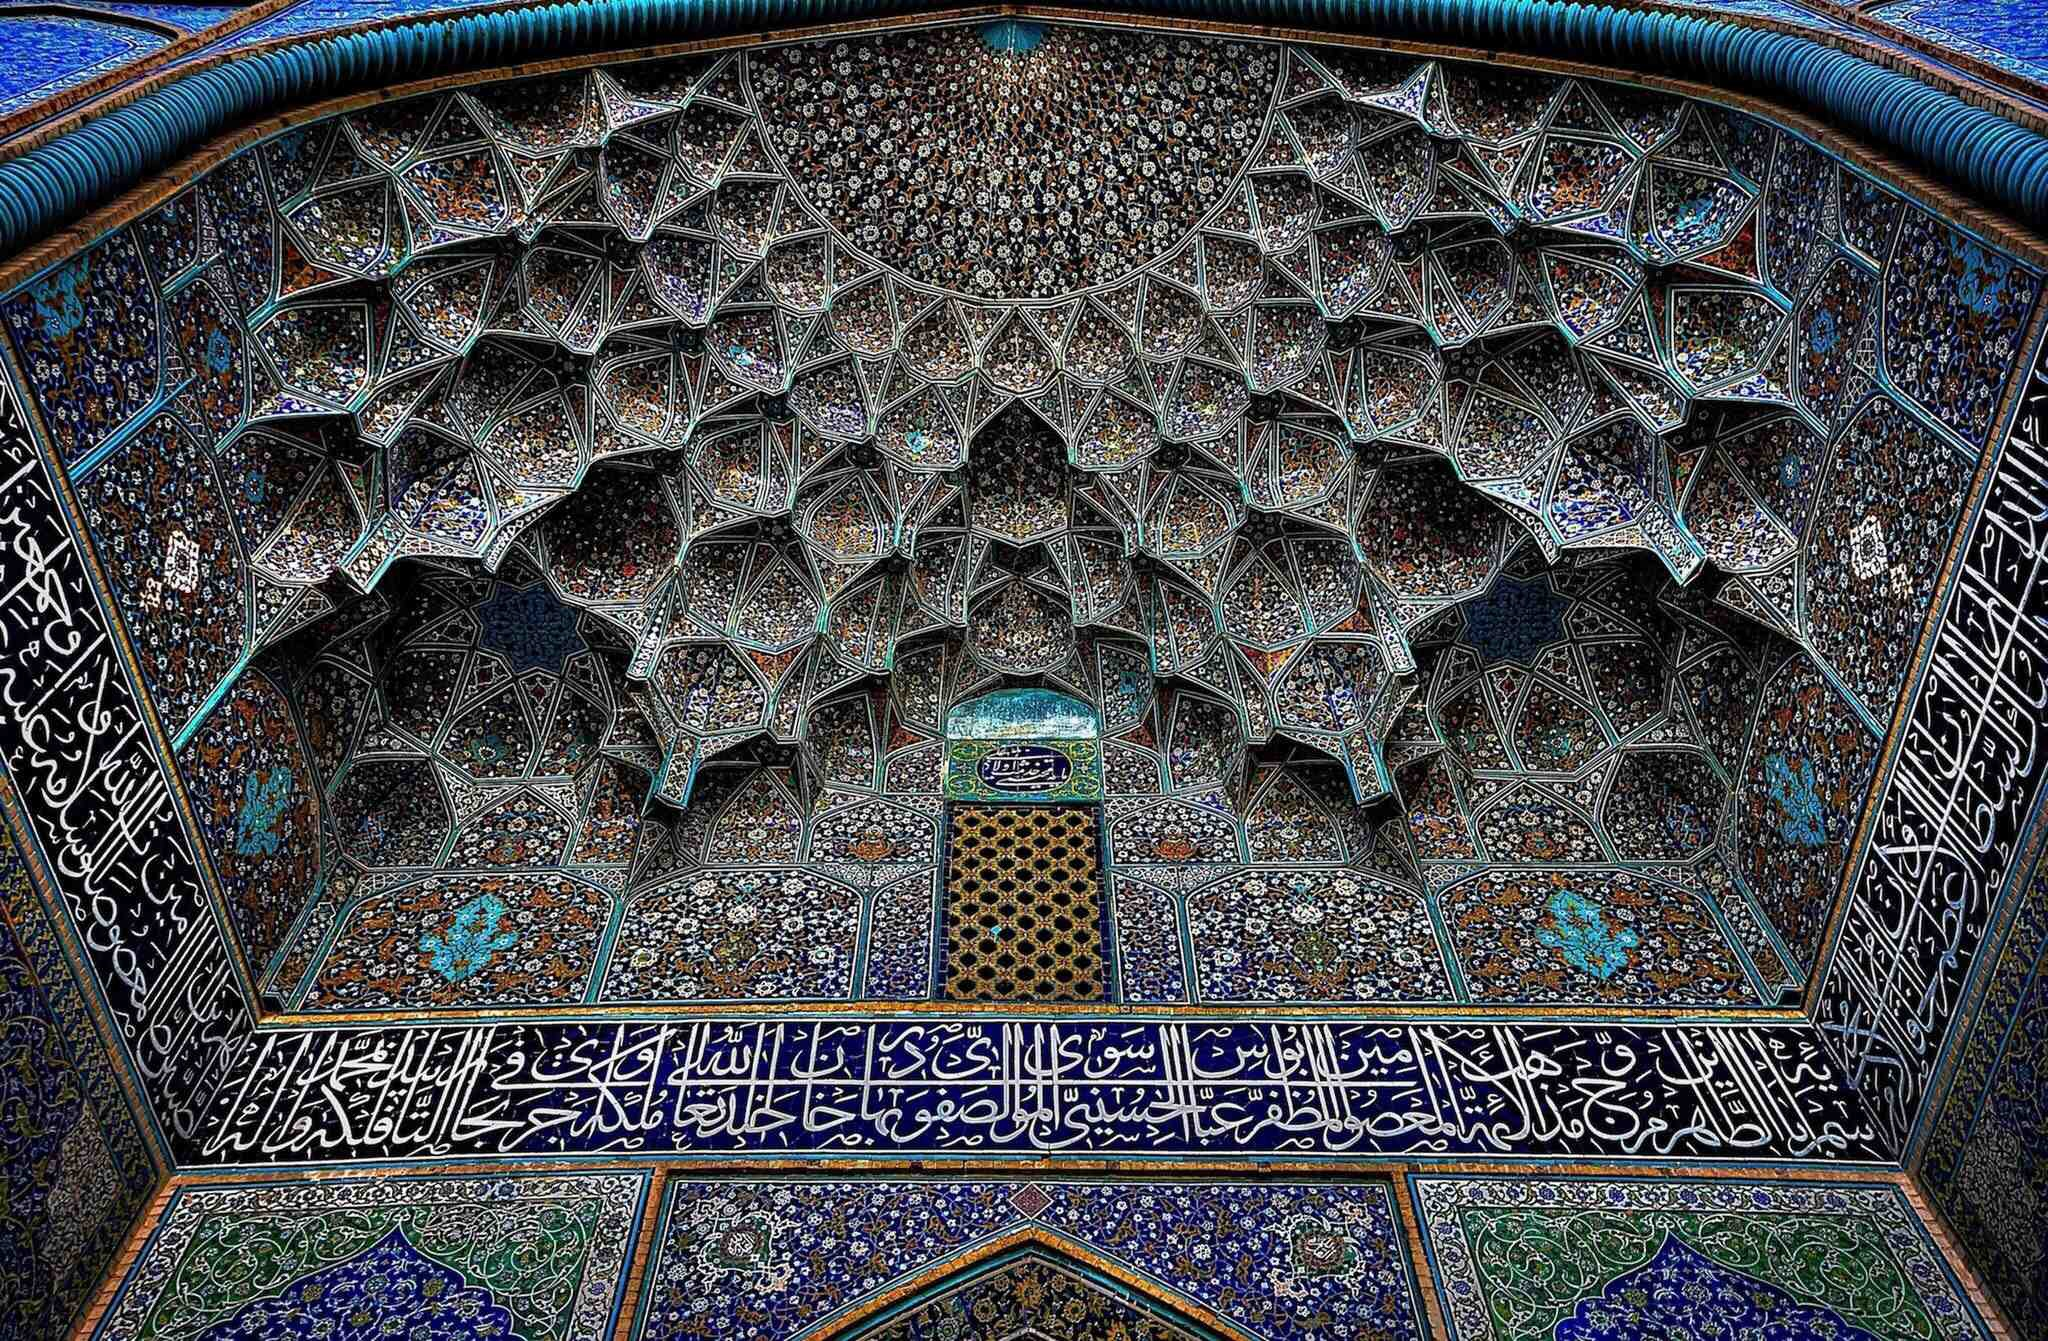 http://doorofperception.com/wp-content/uploads/doorofperception.com-islamic_architecture-iranian_mosque_celings-3.jpg